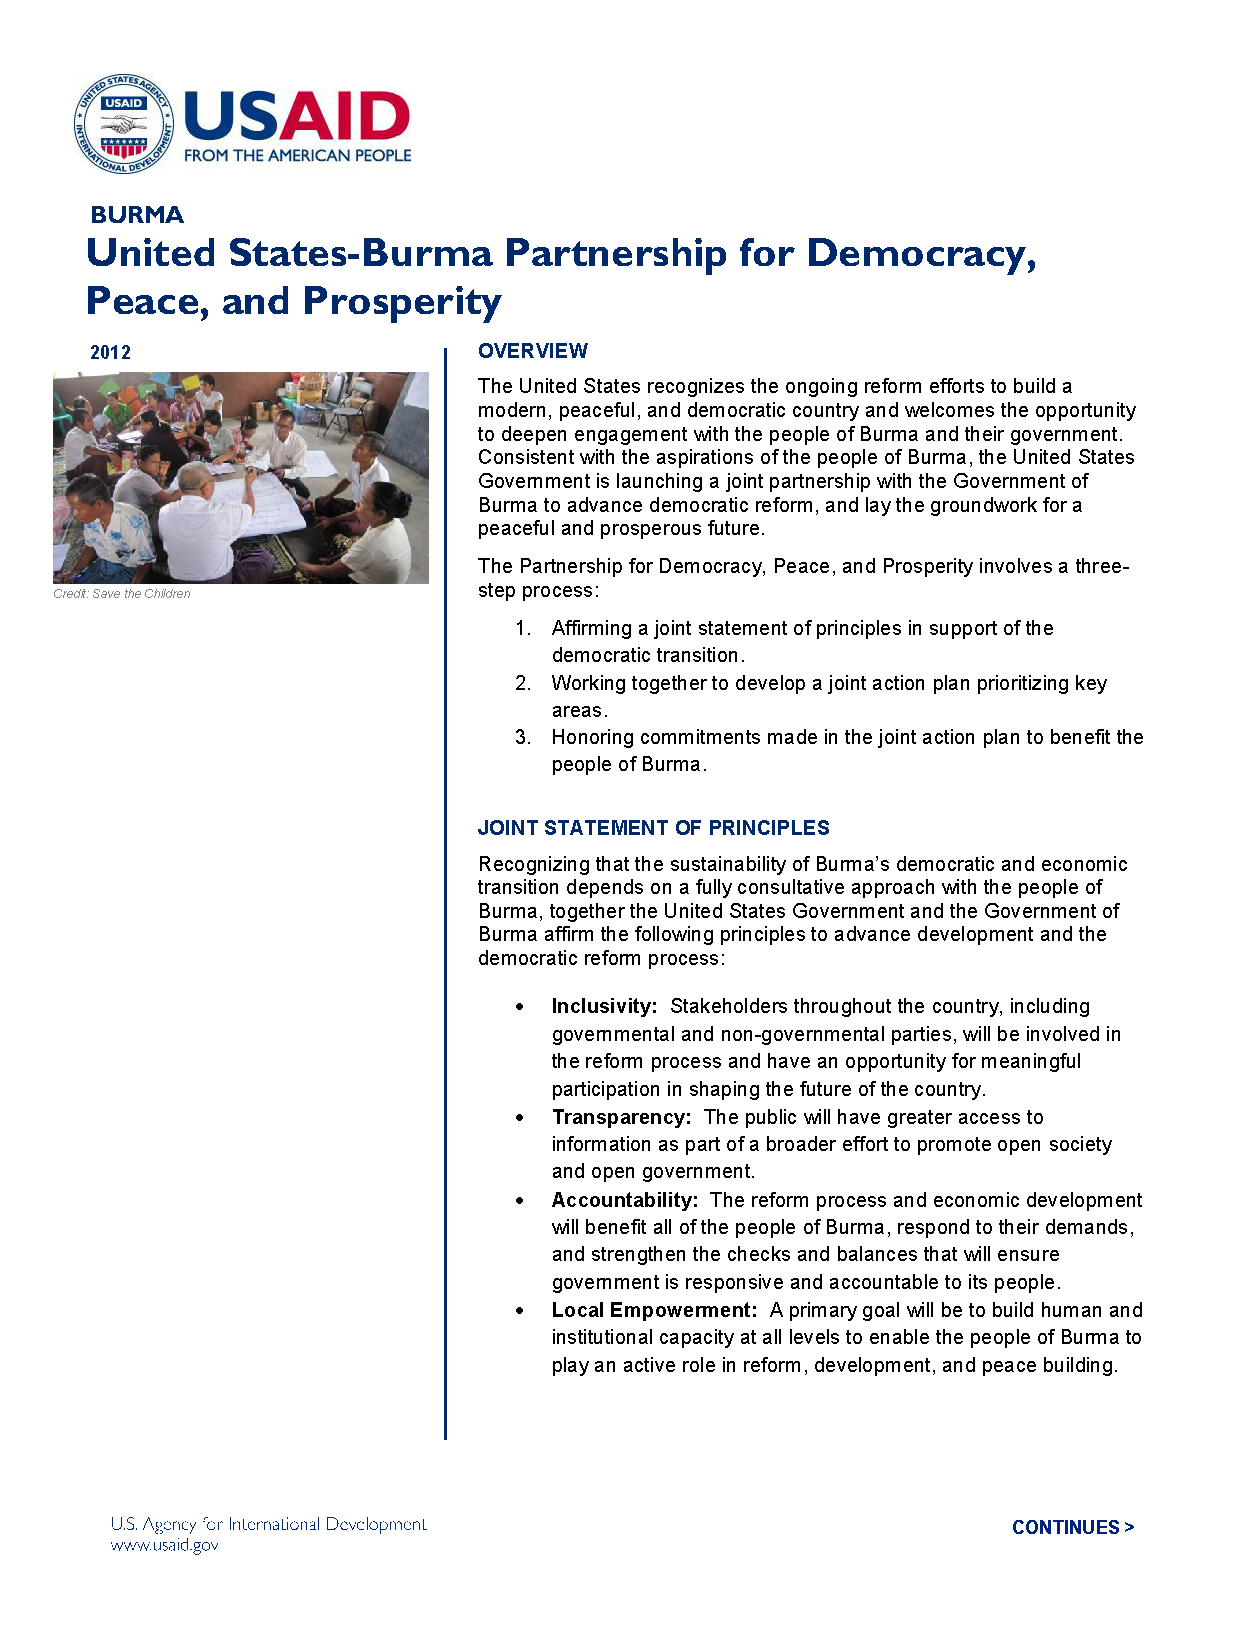 United States-Burma Partnership for Democracy, Peace, and Prosperity Fact Sheet